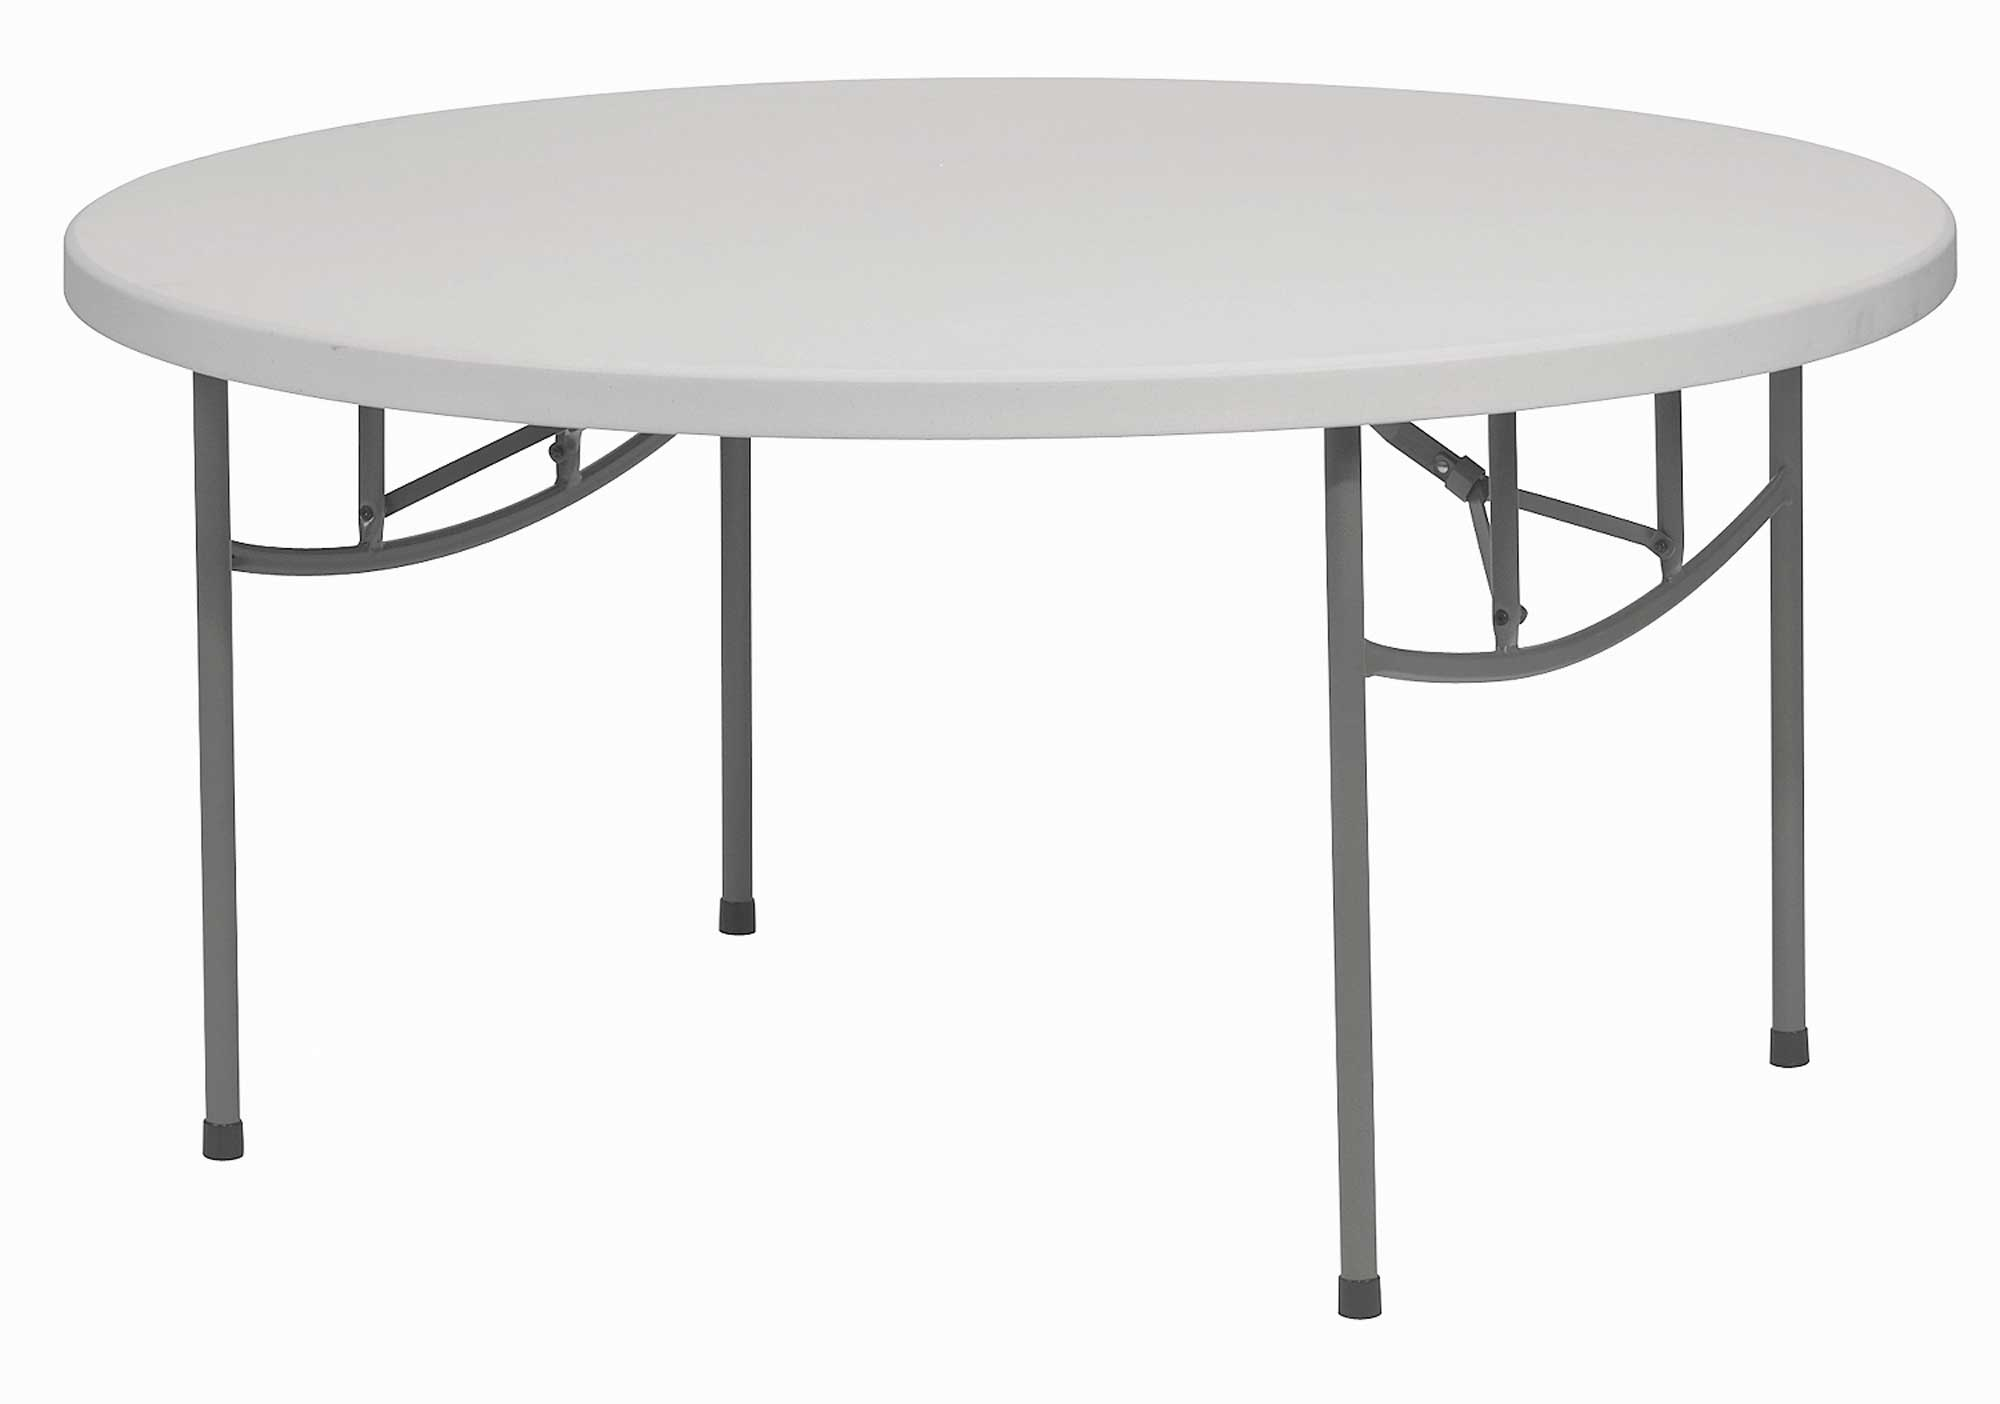 lifetime chairs and tables tuscan dining round folding table benefit features